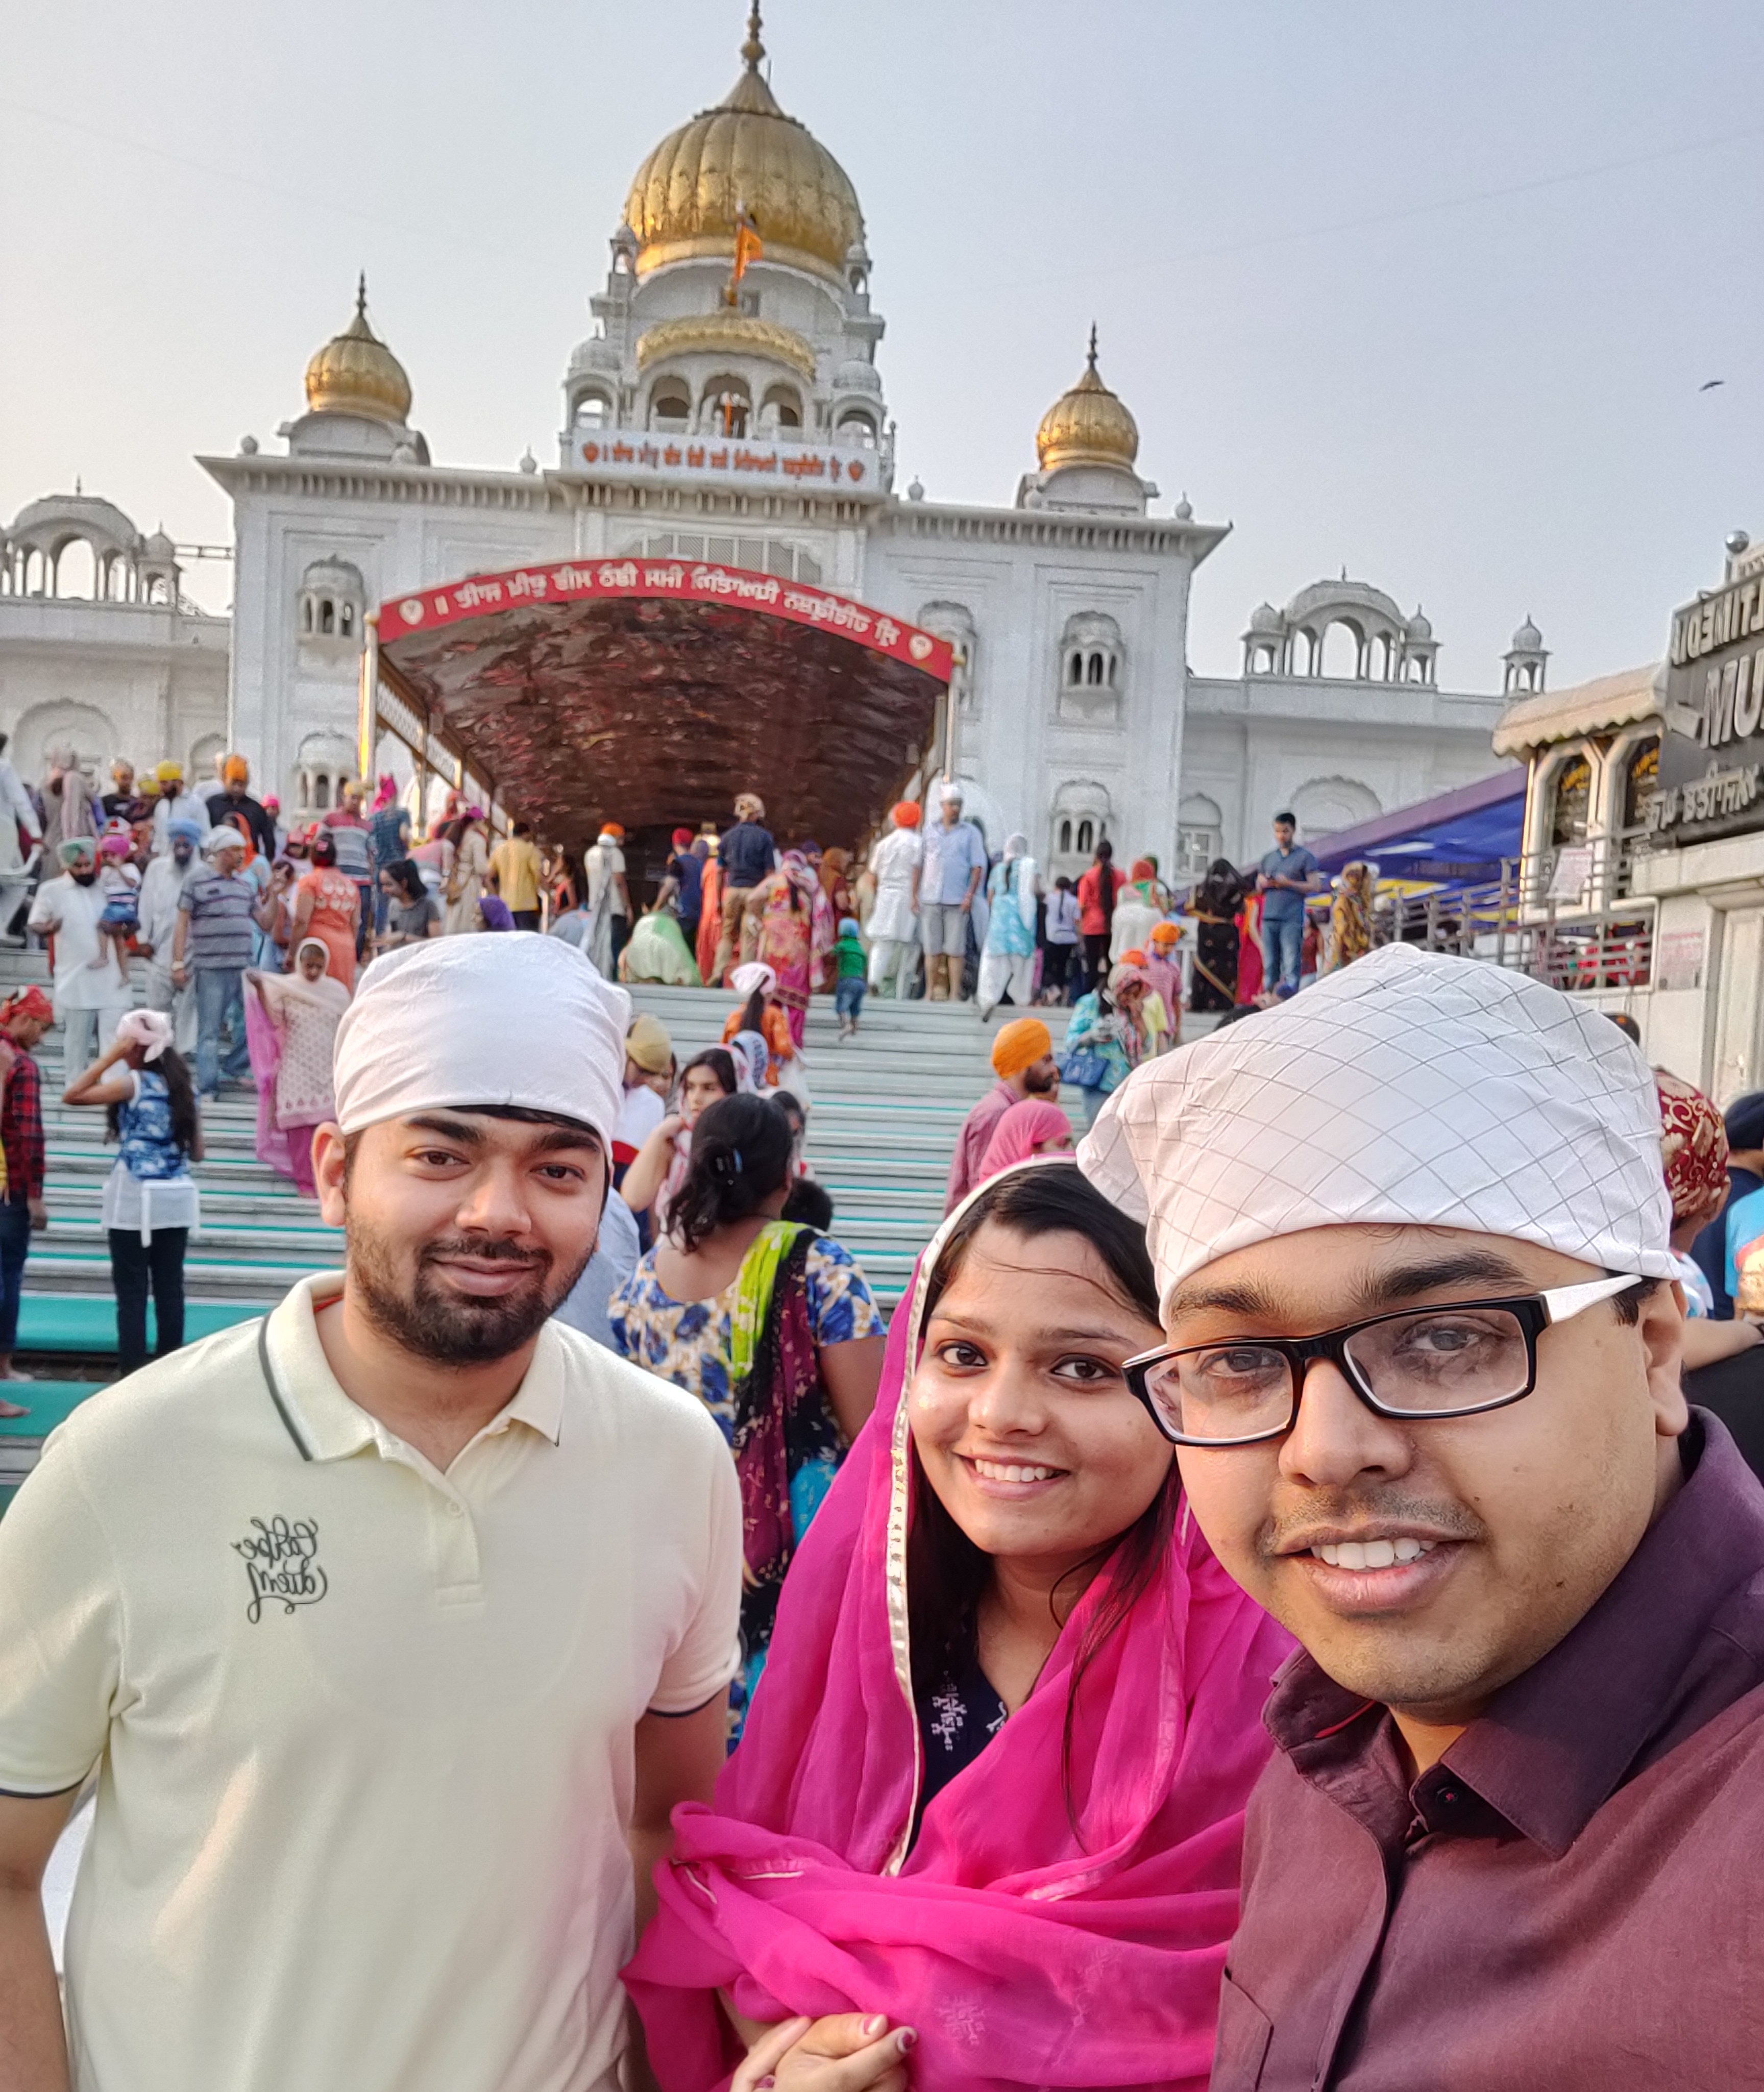 My brother, husband and I at the Gurudwara